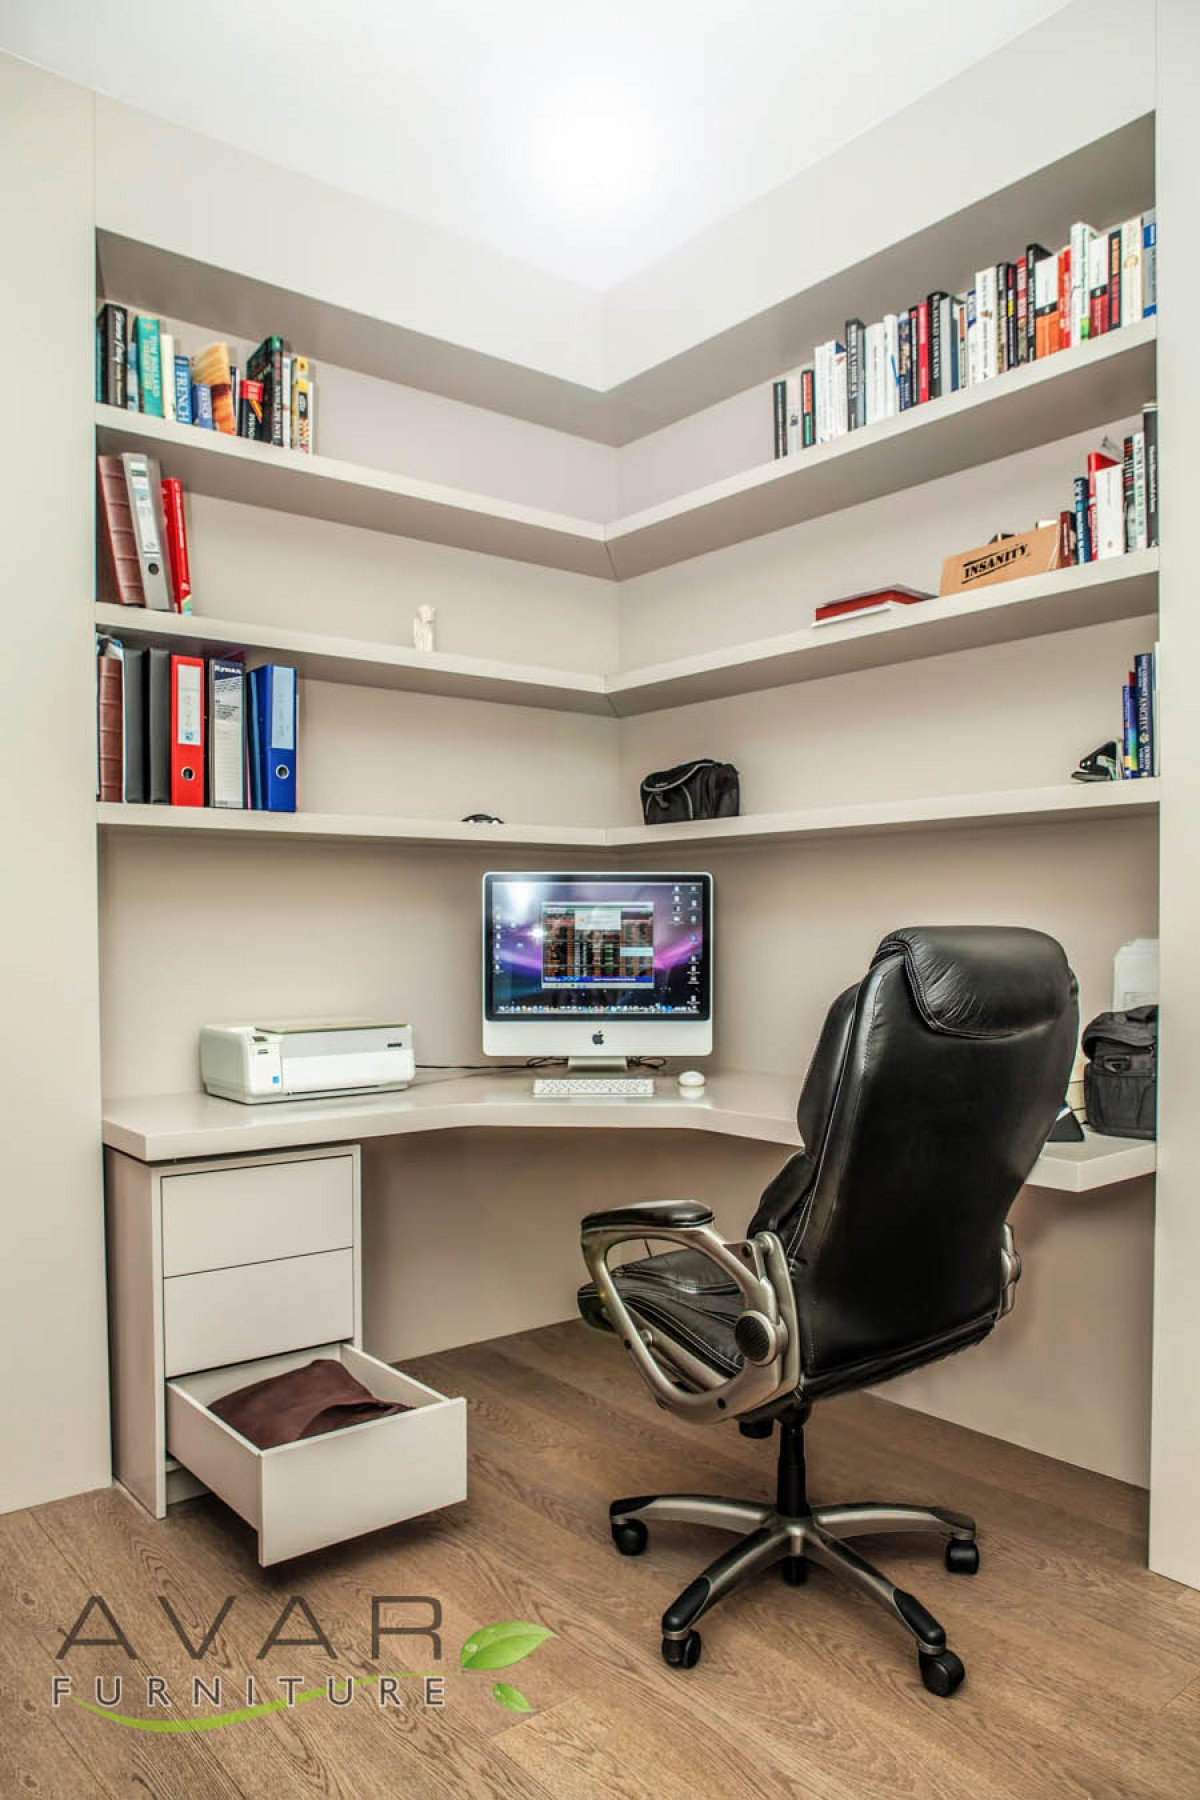 Office furniture north london uk home office home for Home furniture london